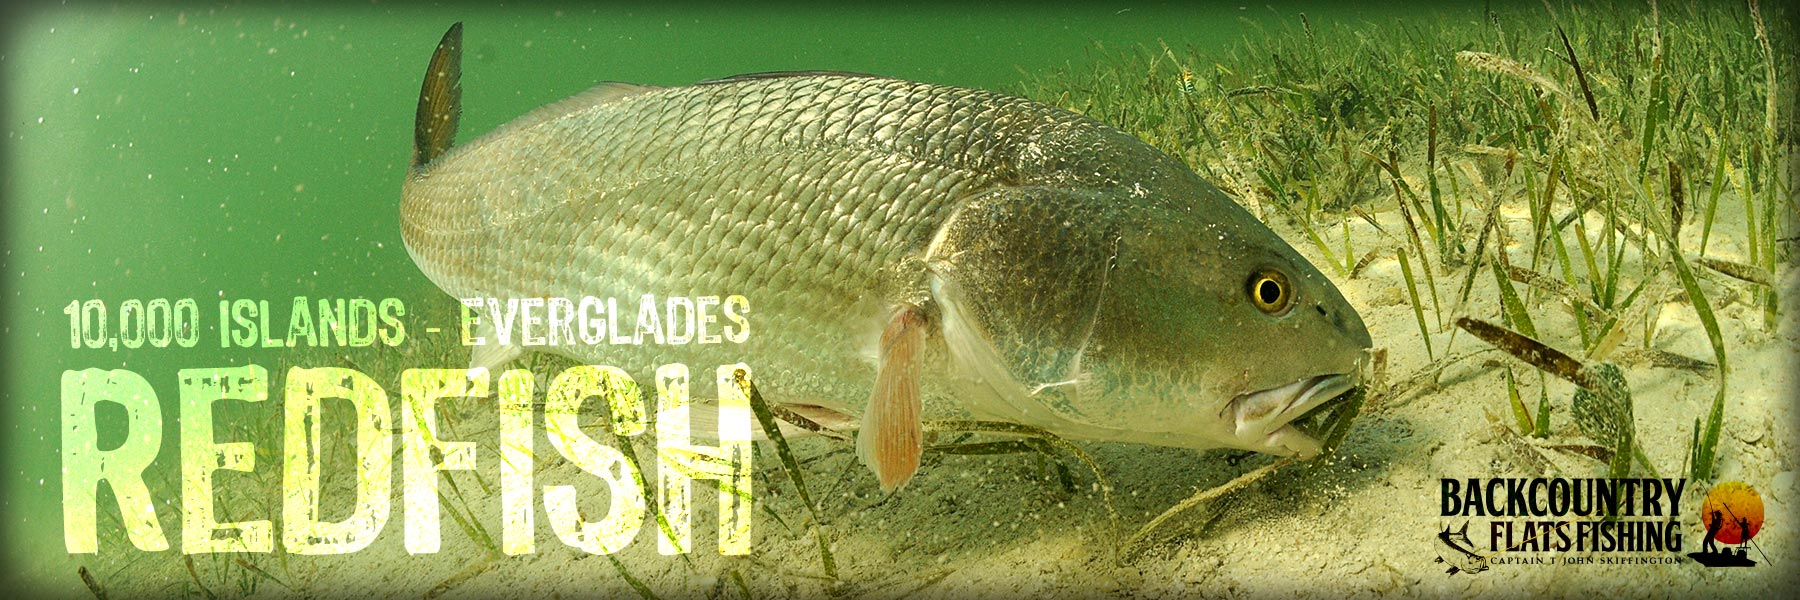 Charters for Redfish Everglades